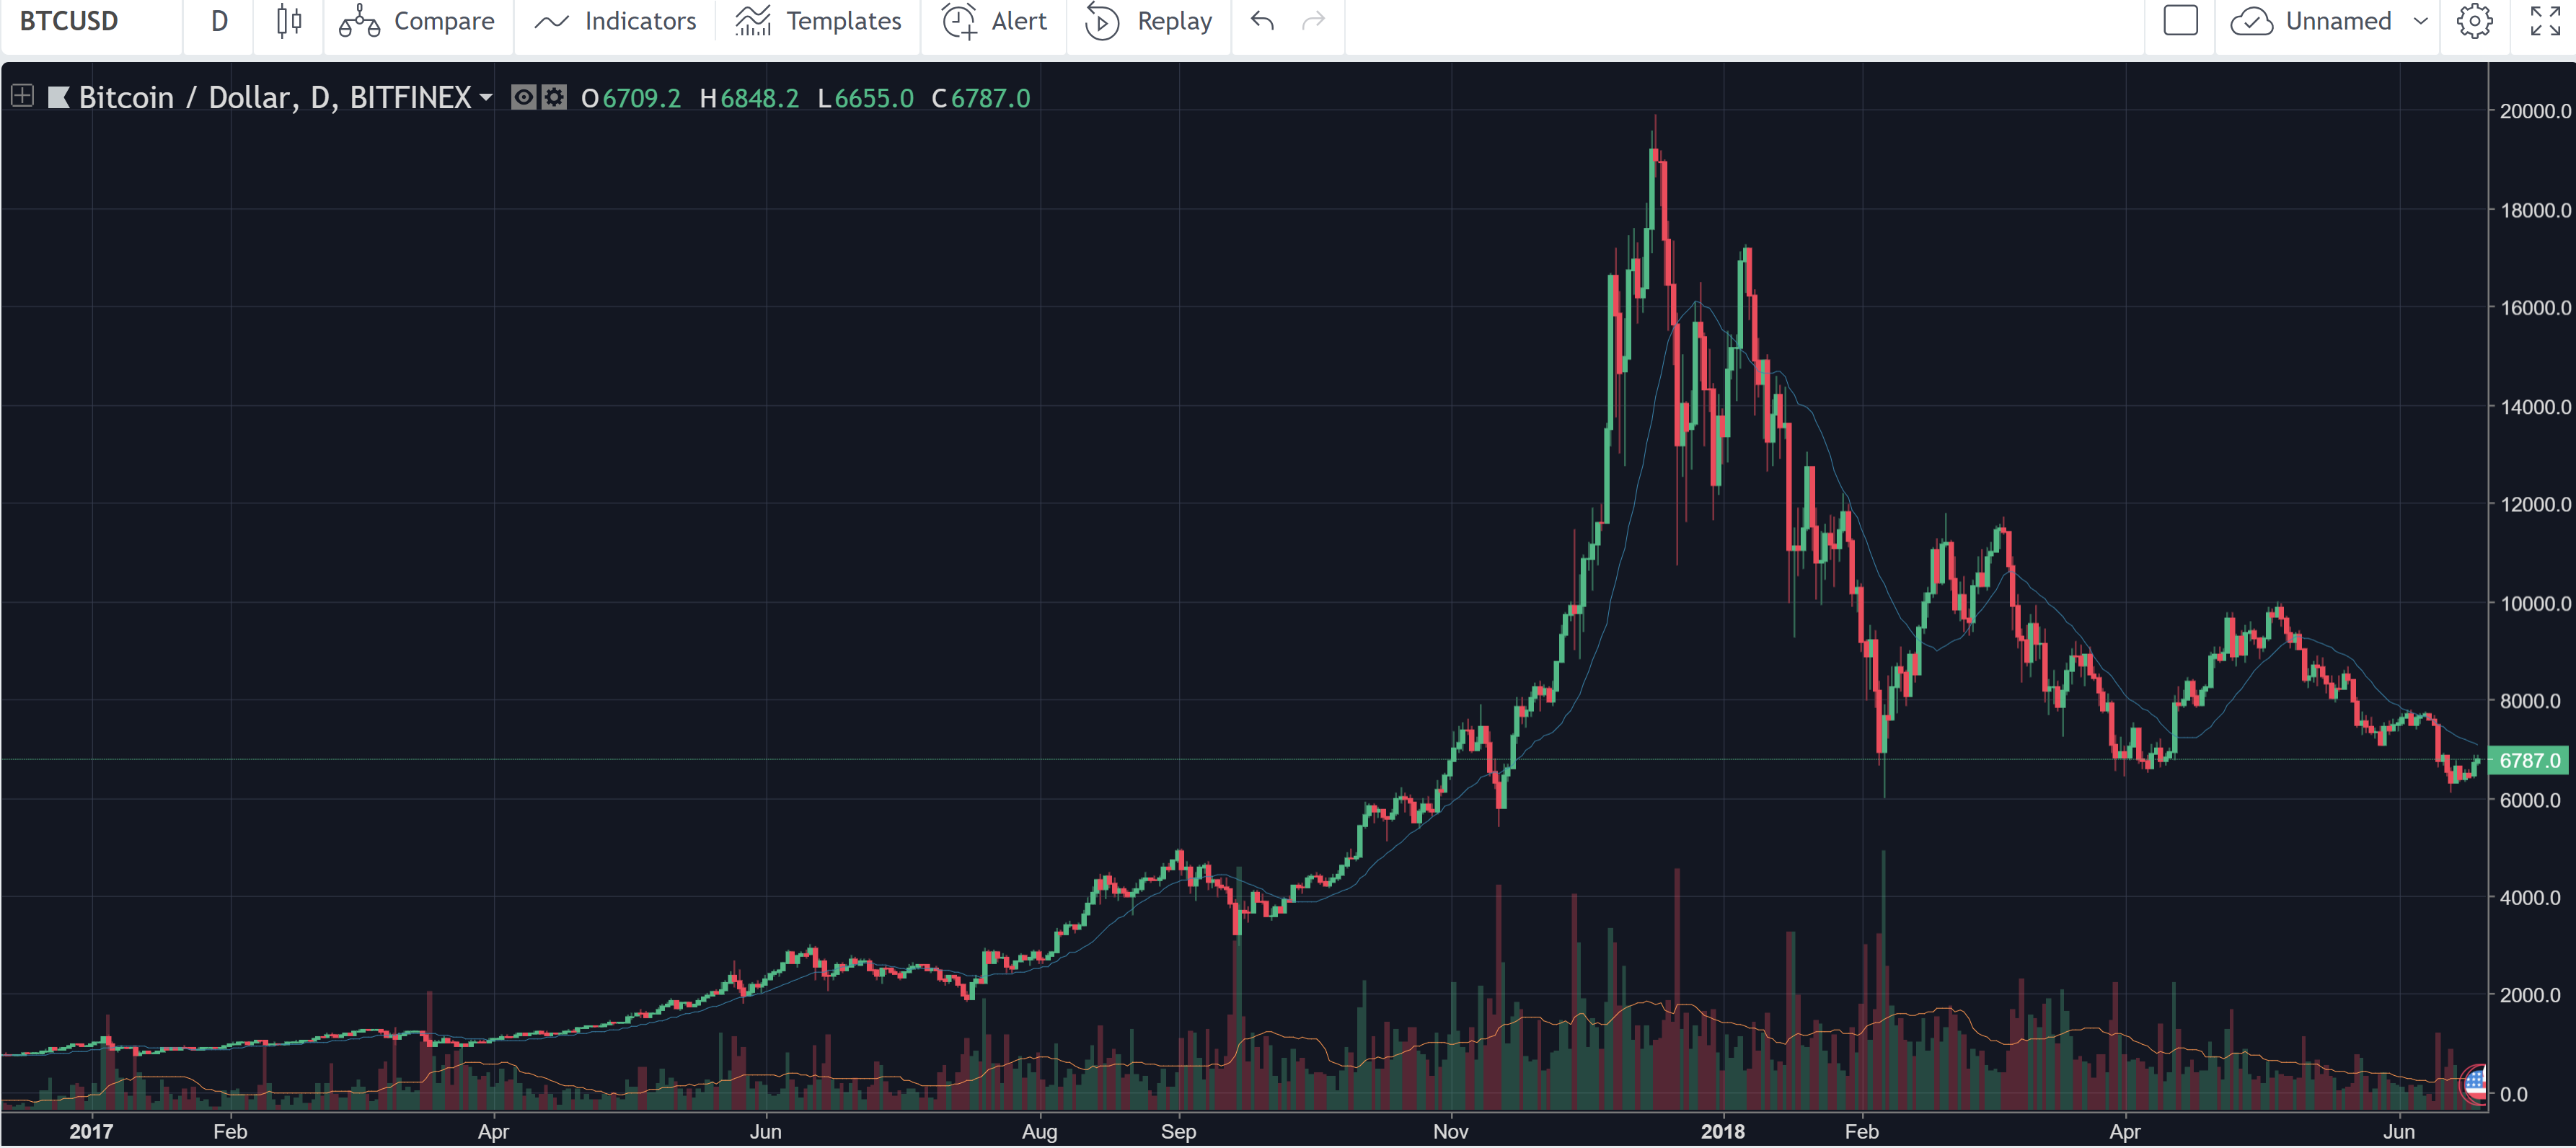 2018 Bitcoin Crash vs 2013 Bitcoin Crash